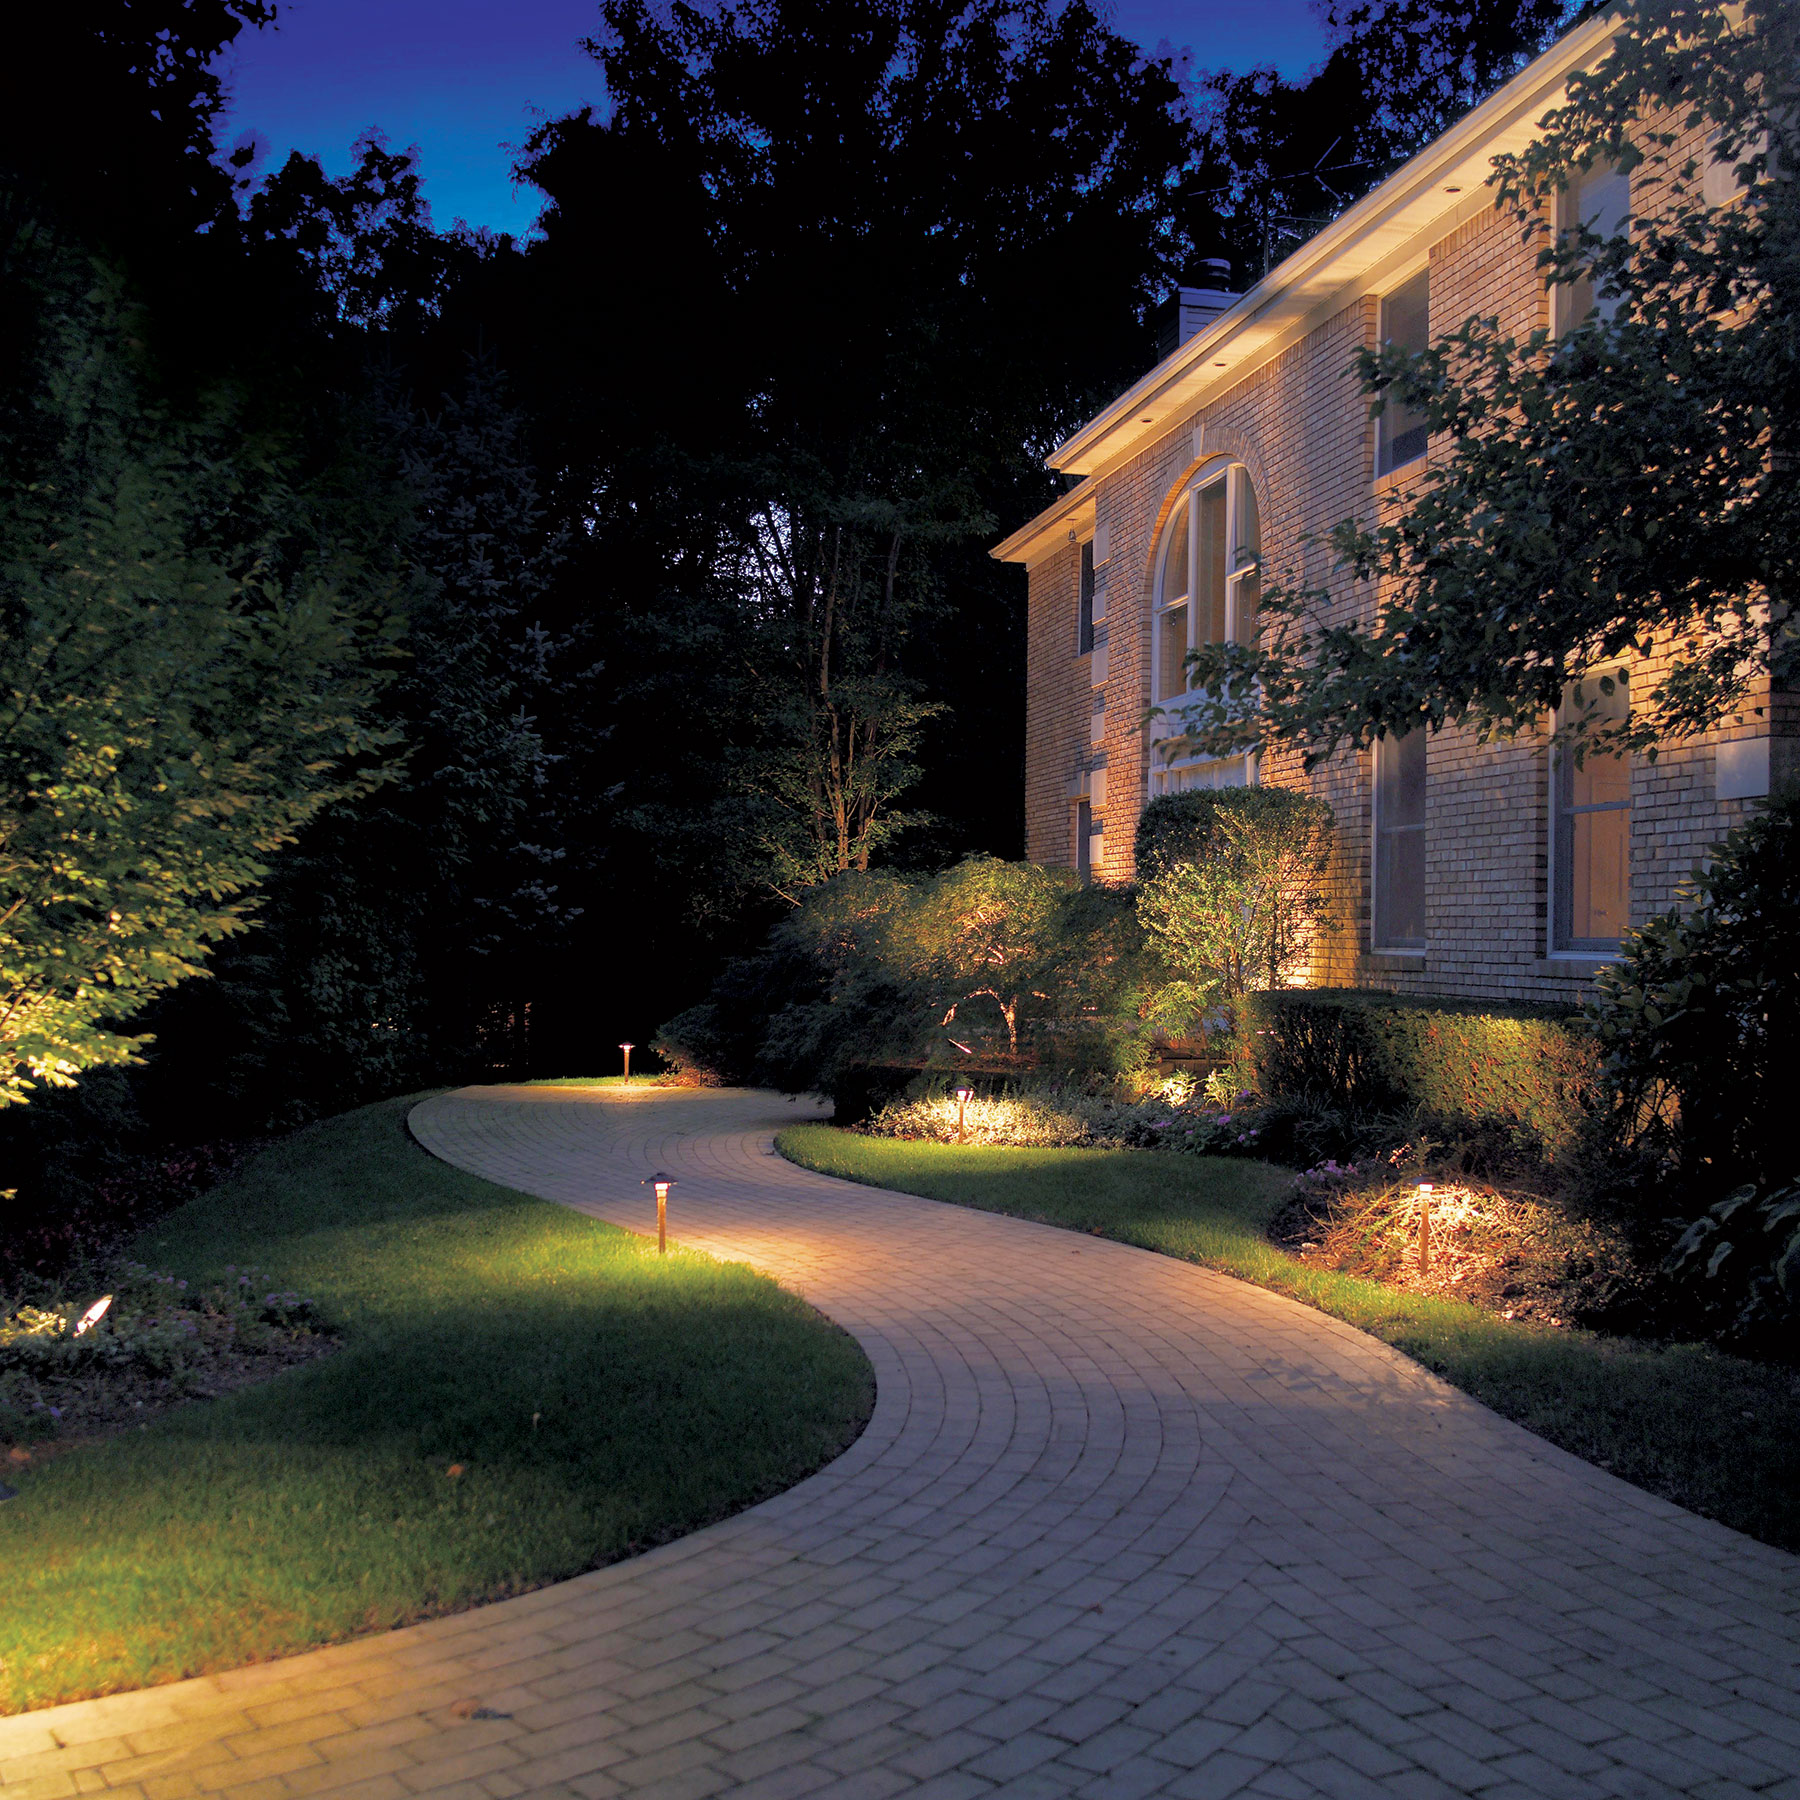 Driveway Lights Guide Outdoor Lighting Ideas Tips: Tips From Harris Landscape